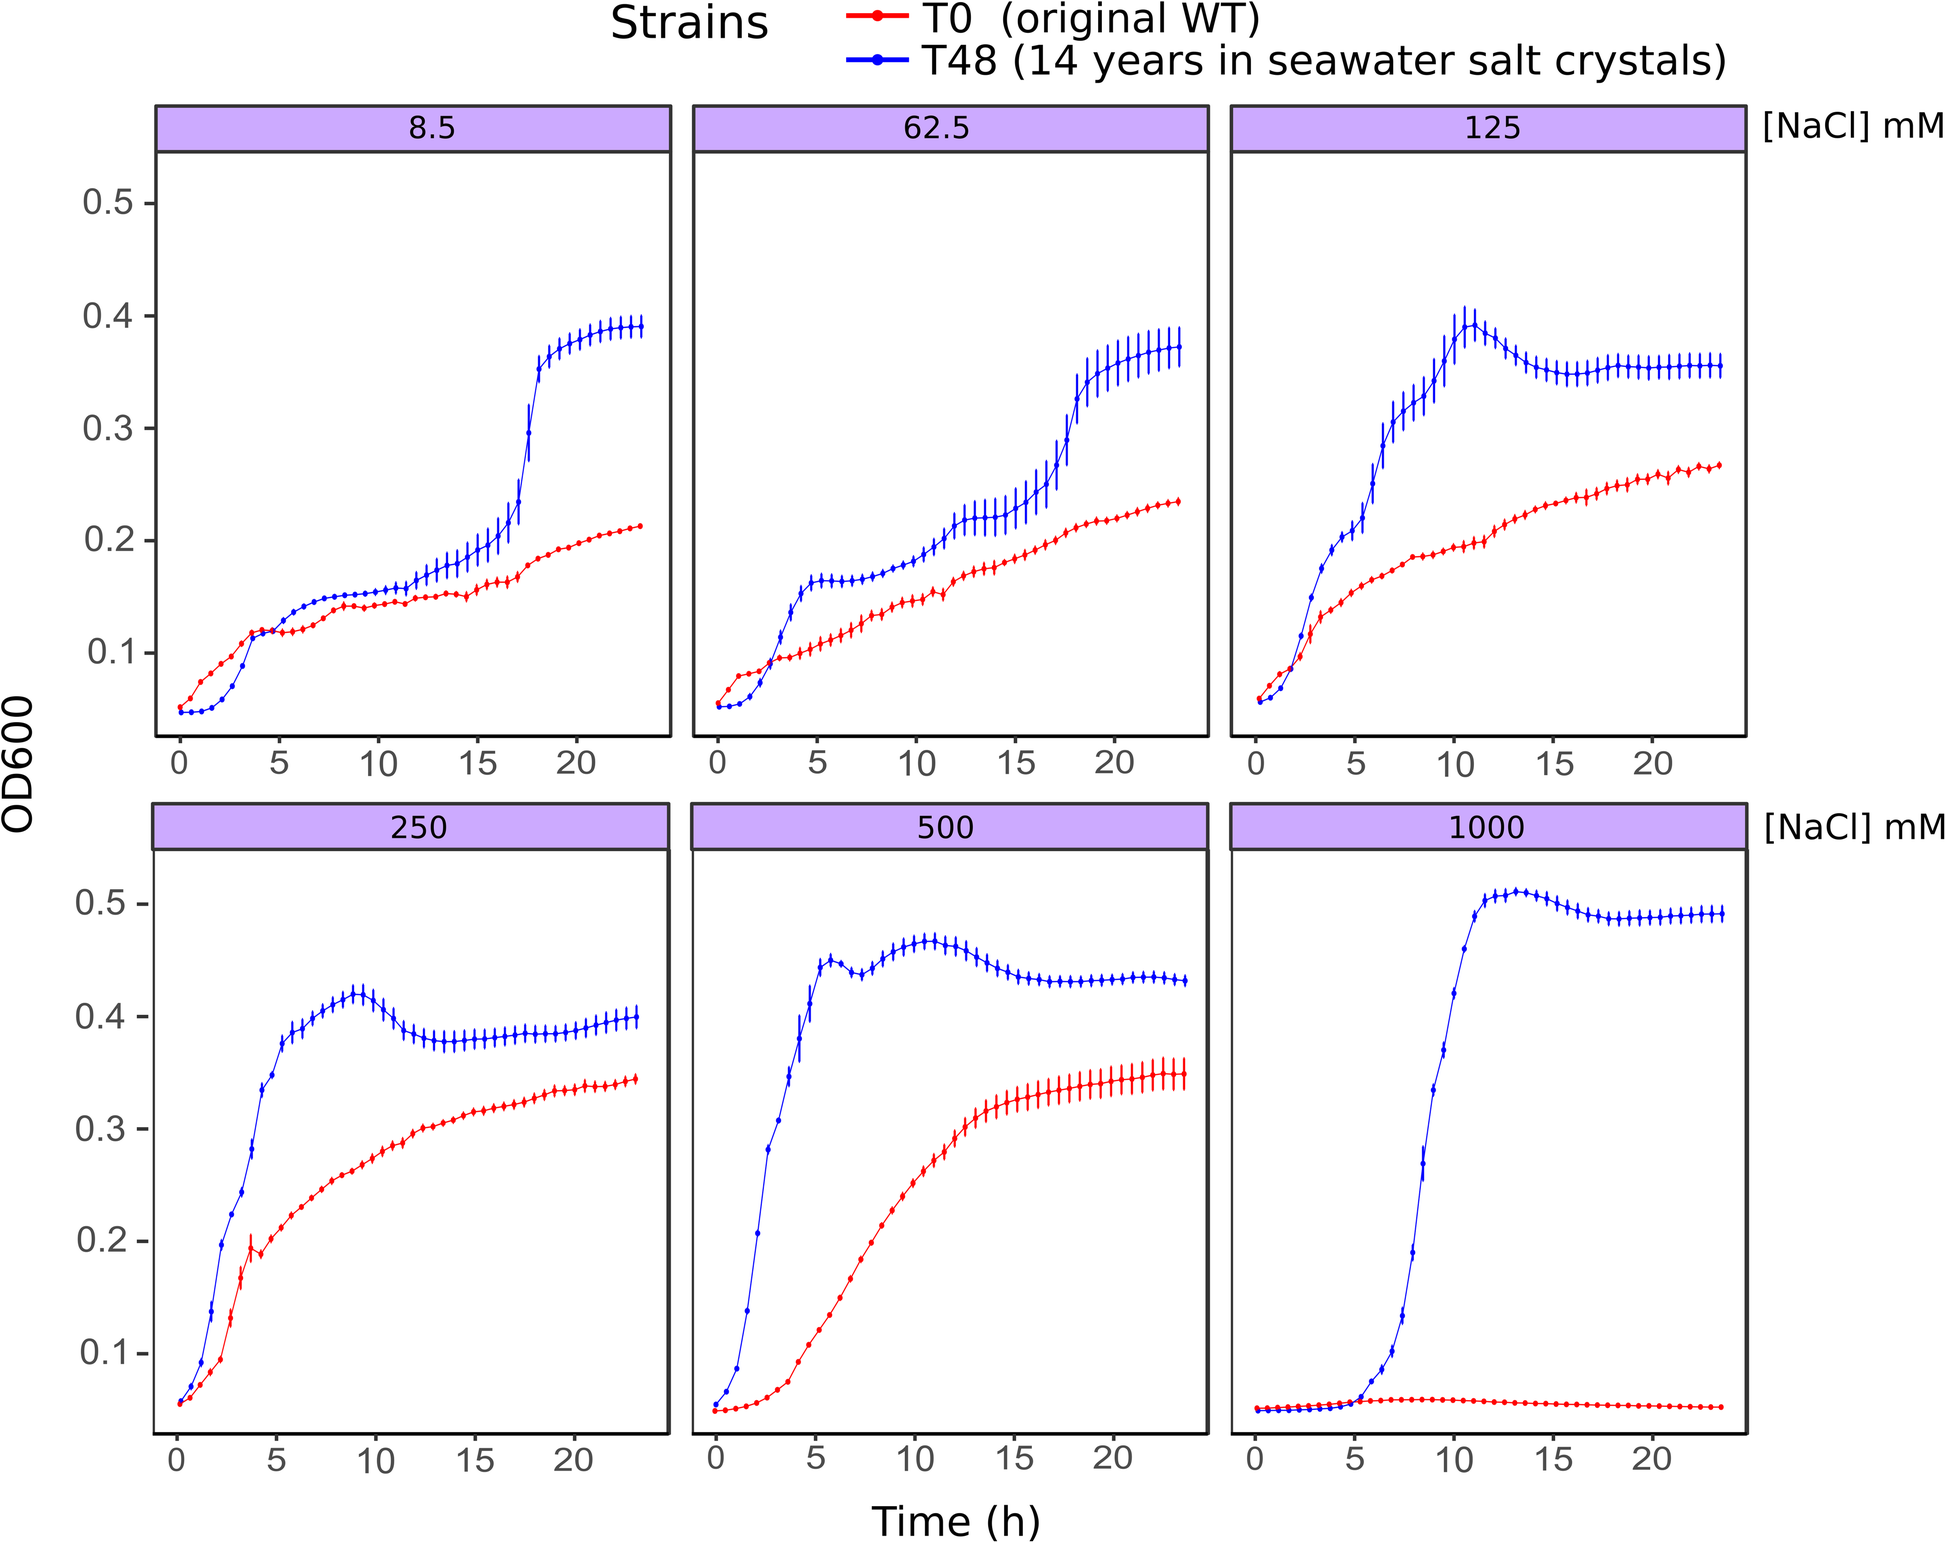 Seawater salt-trapped Pseudomonas aeruginosa survives for years and